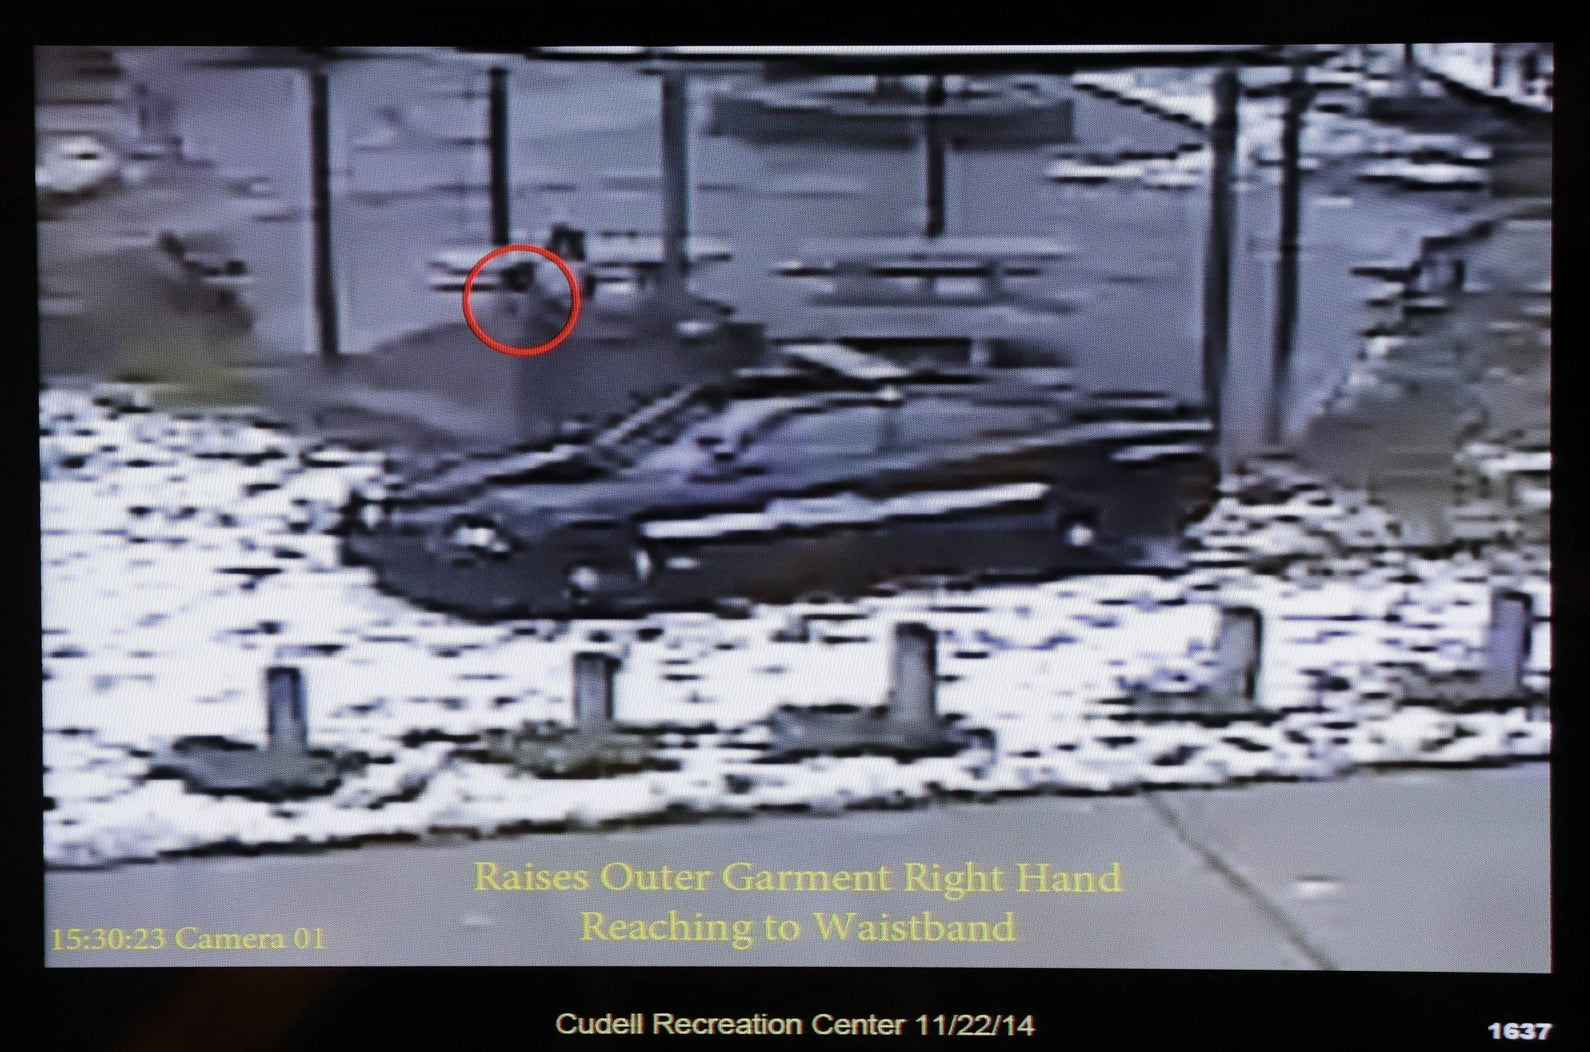 Surveillance video showing officers arrive at Cudell Park where Tamir Rice was playing.